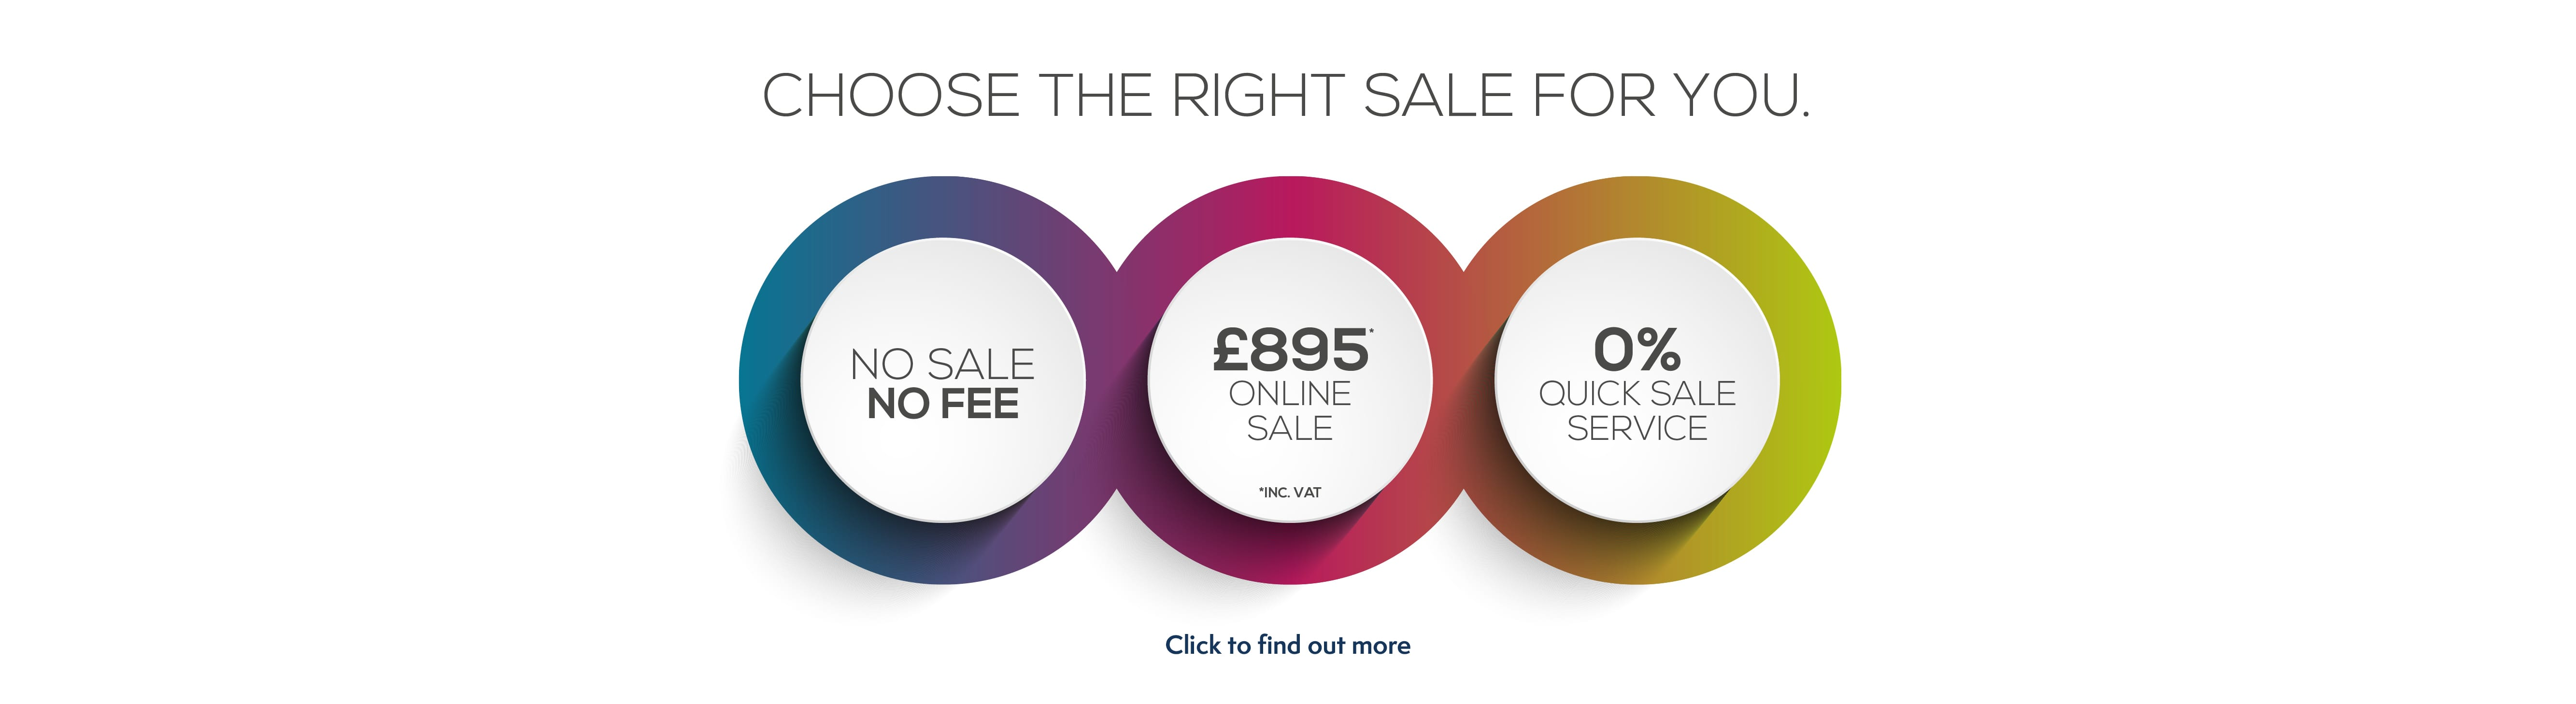 Kirkham Property Oldham Choose the right sale for you